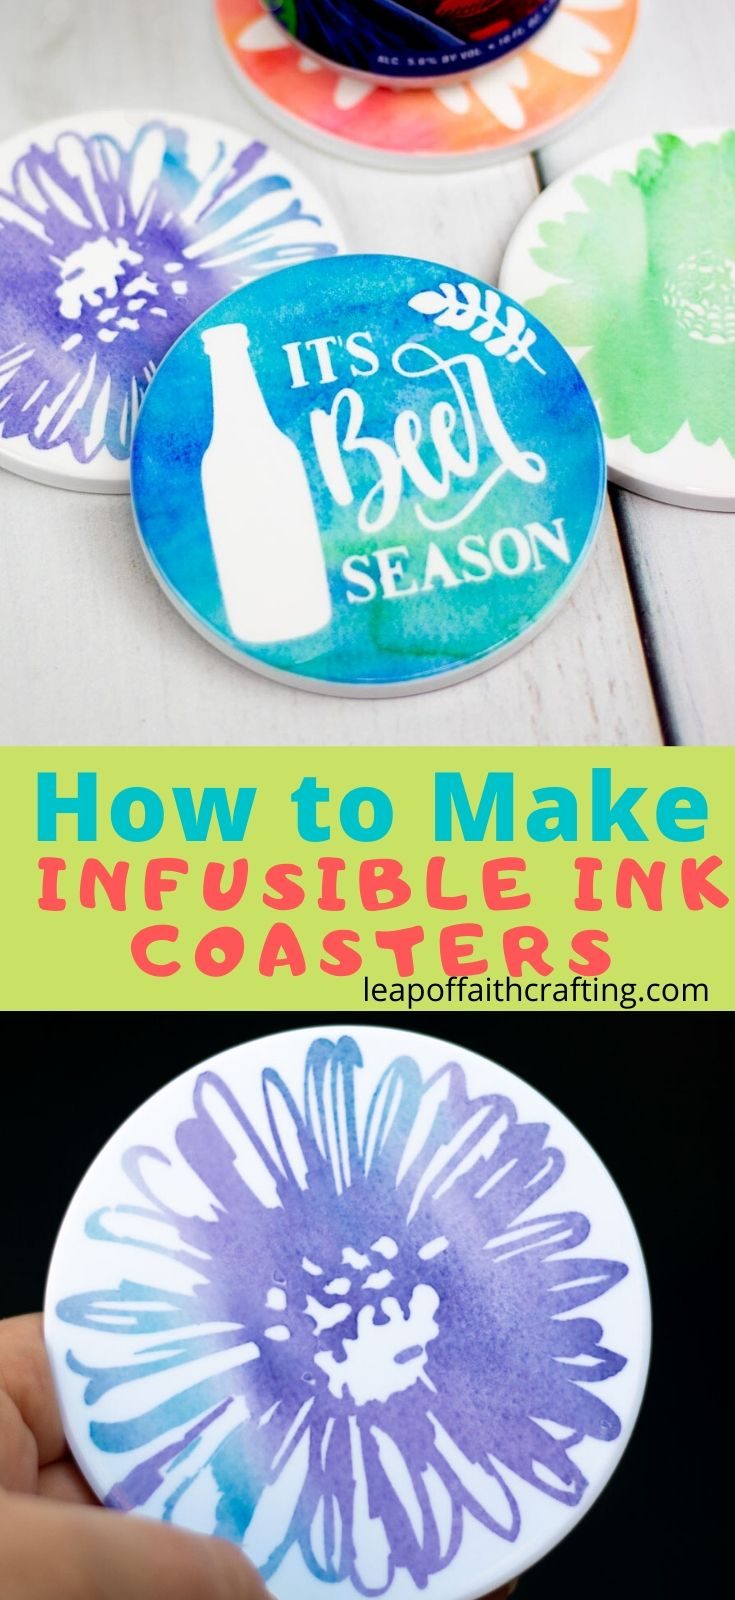 infusible ink coasters pinterest